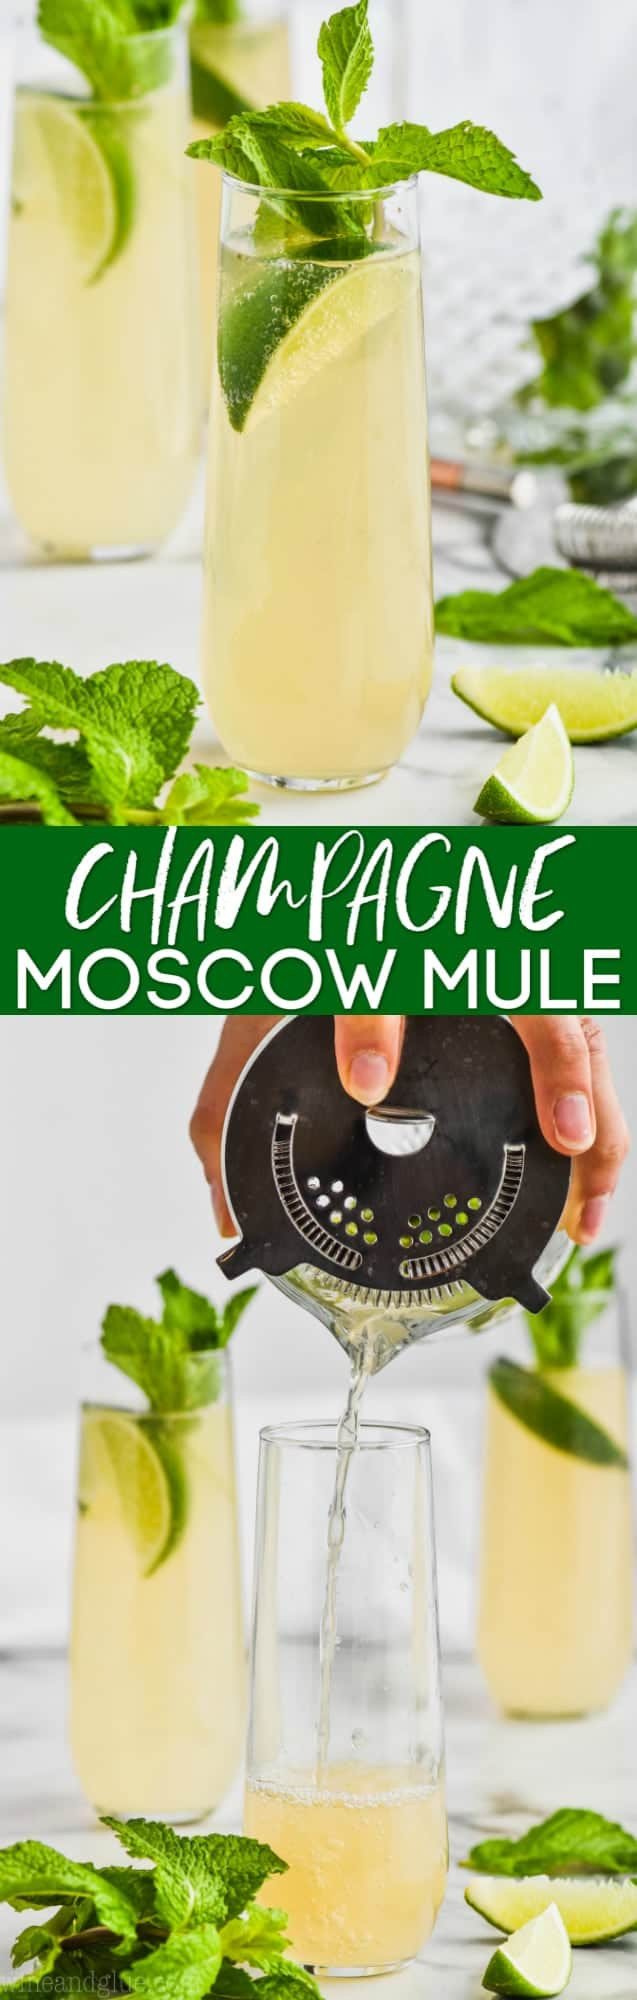 collage of photos of champagne moscow mule